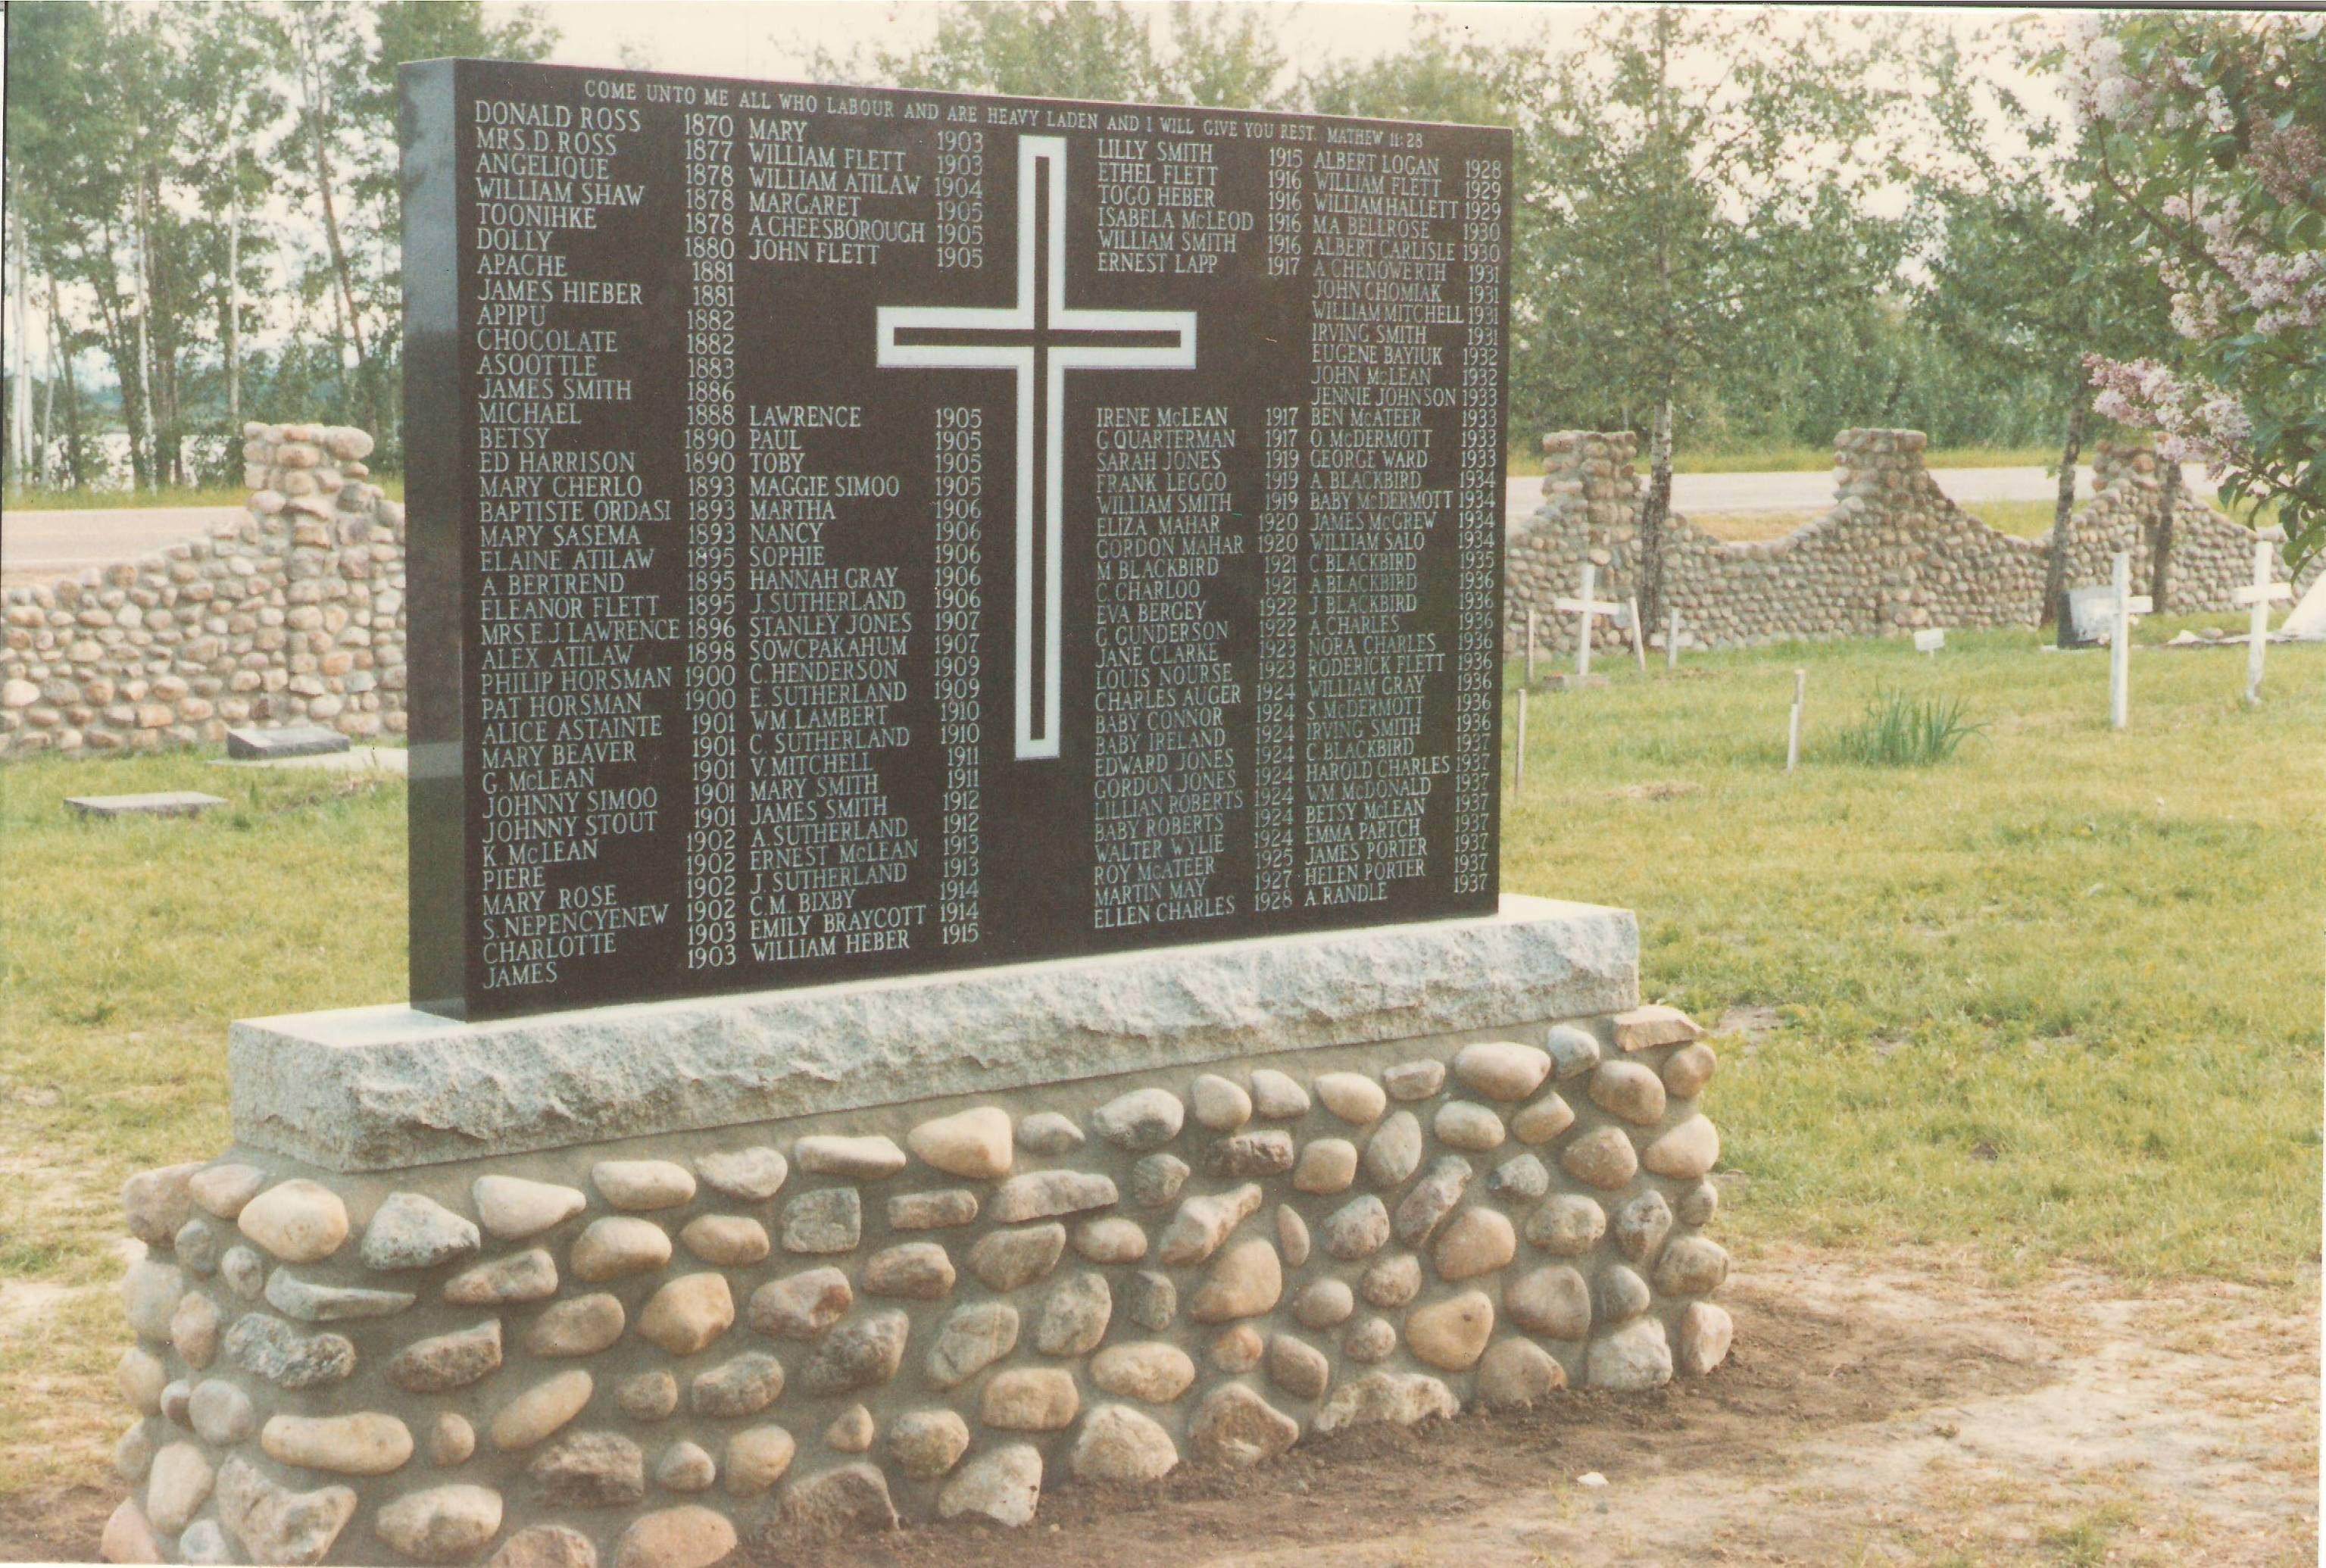 Monument in the St. lukes Cemetry. Photo Credit: Marilee Cranna Toews